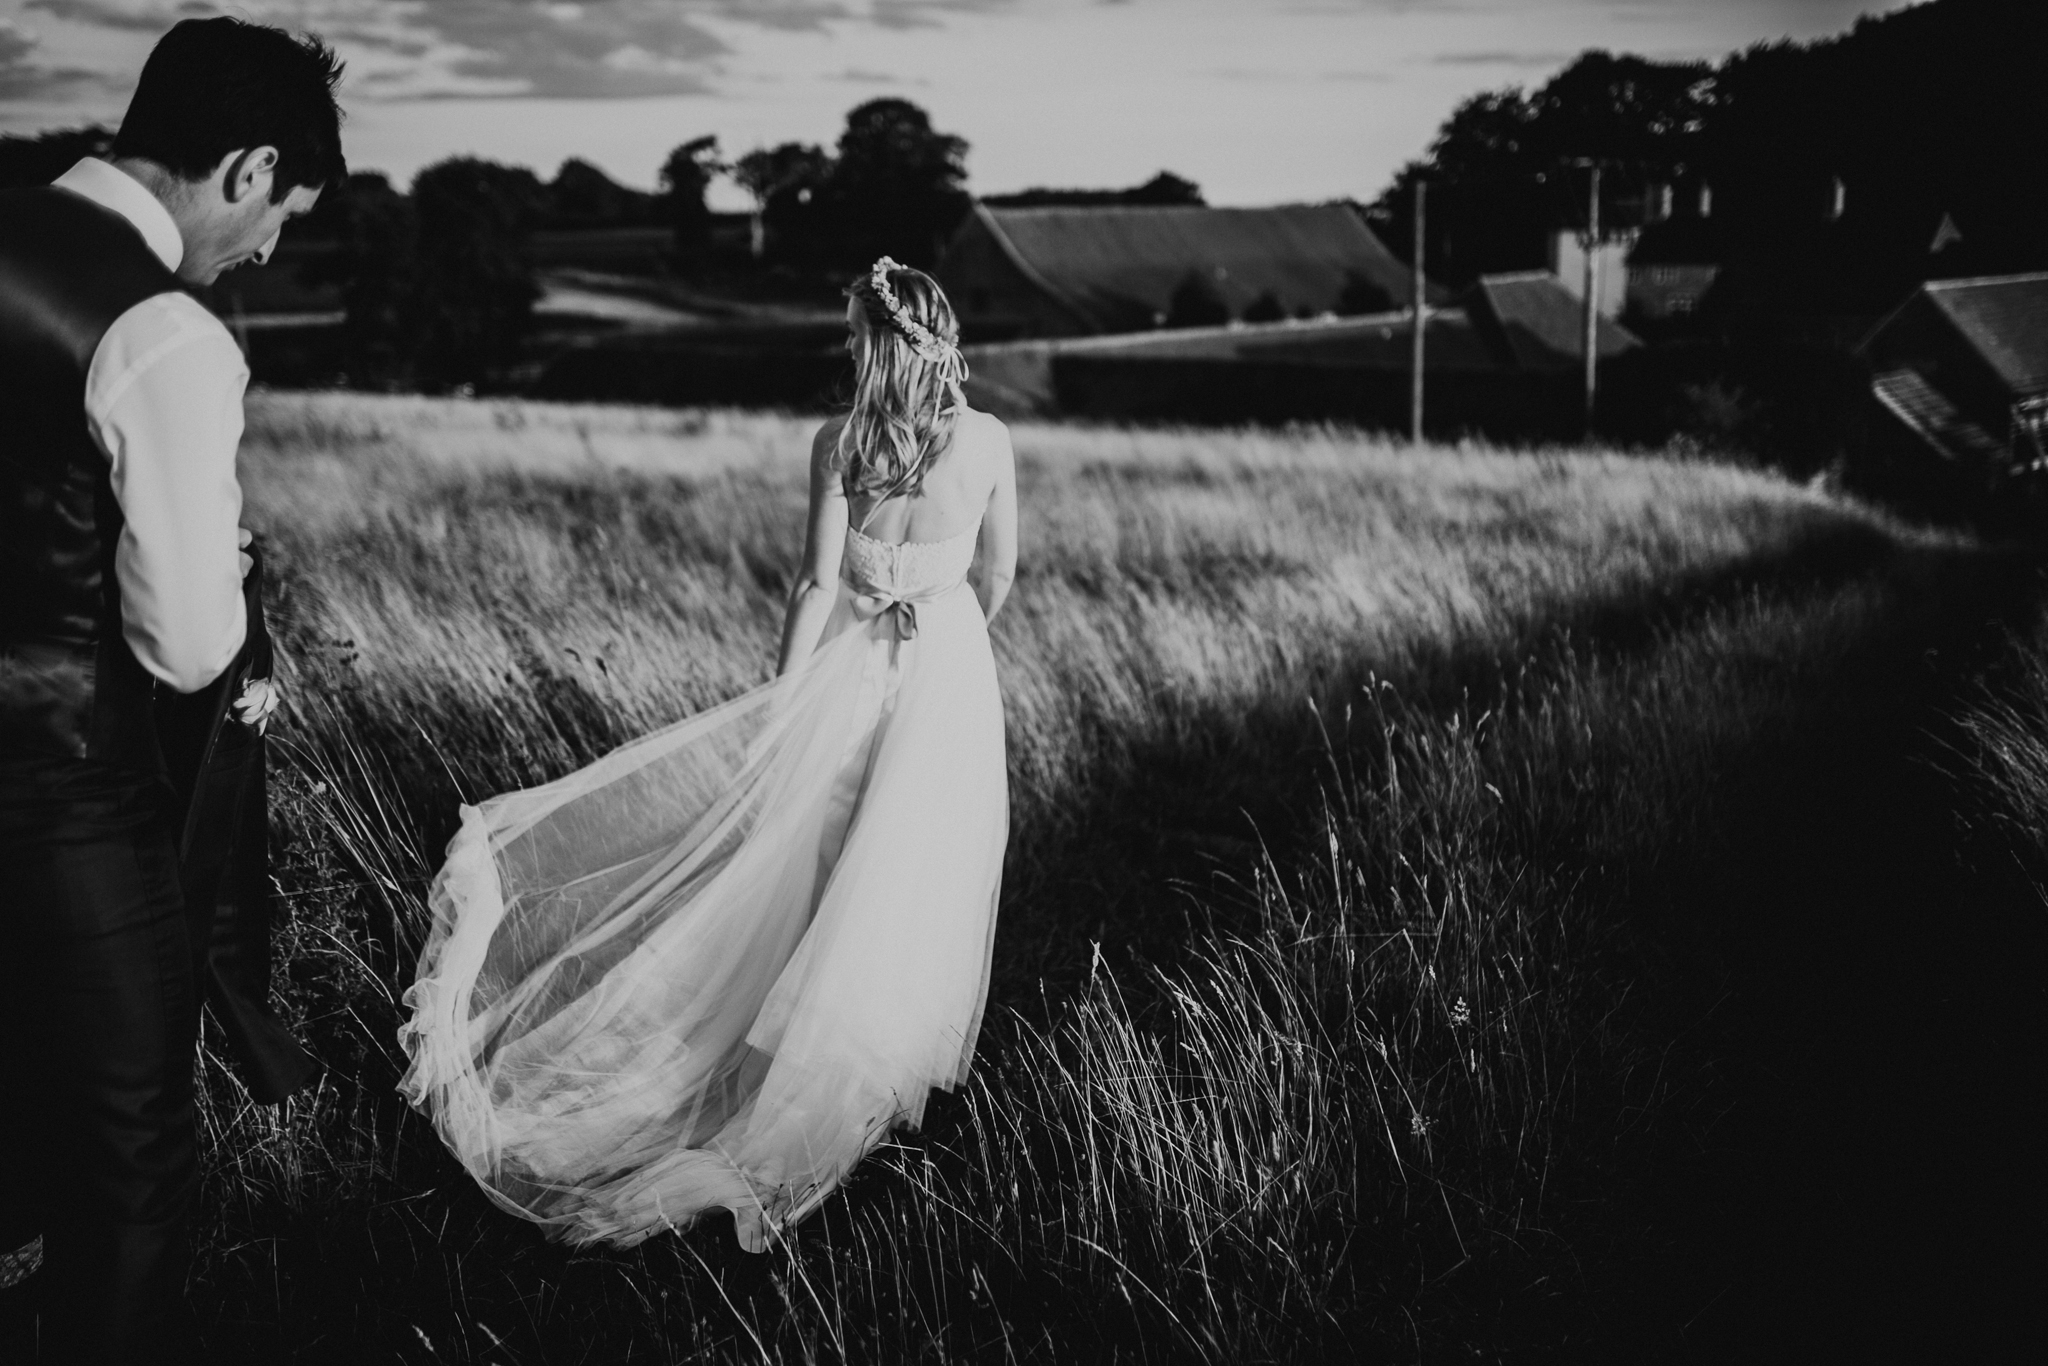 Hannah-Gerrard-Norfolk-Wedding-Back-to-the-Garden-Holt-Wells-Photography-Darina-Stoda-96.jpg